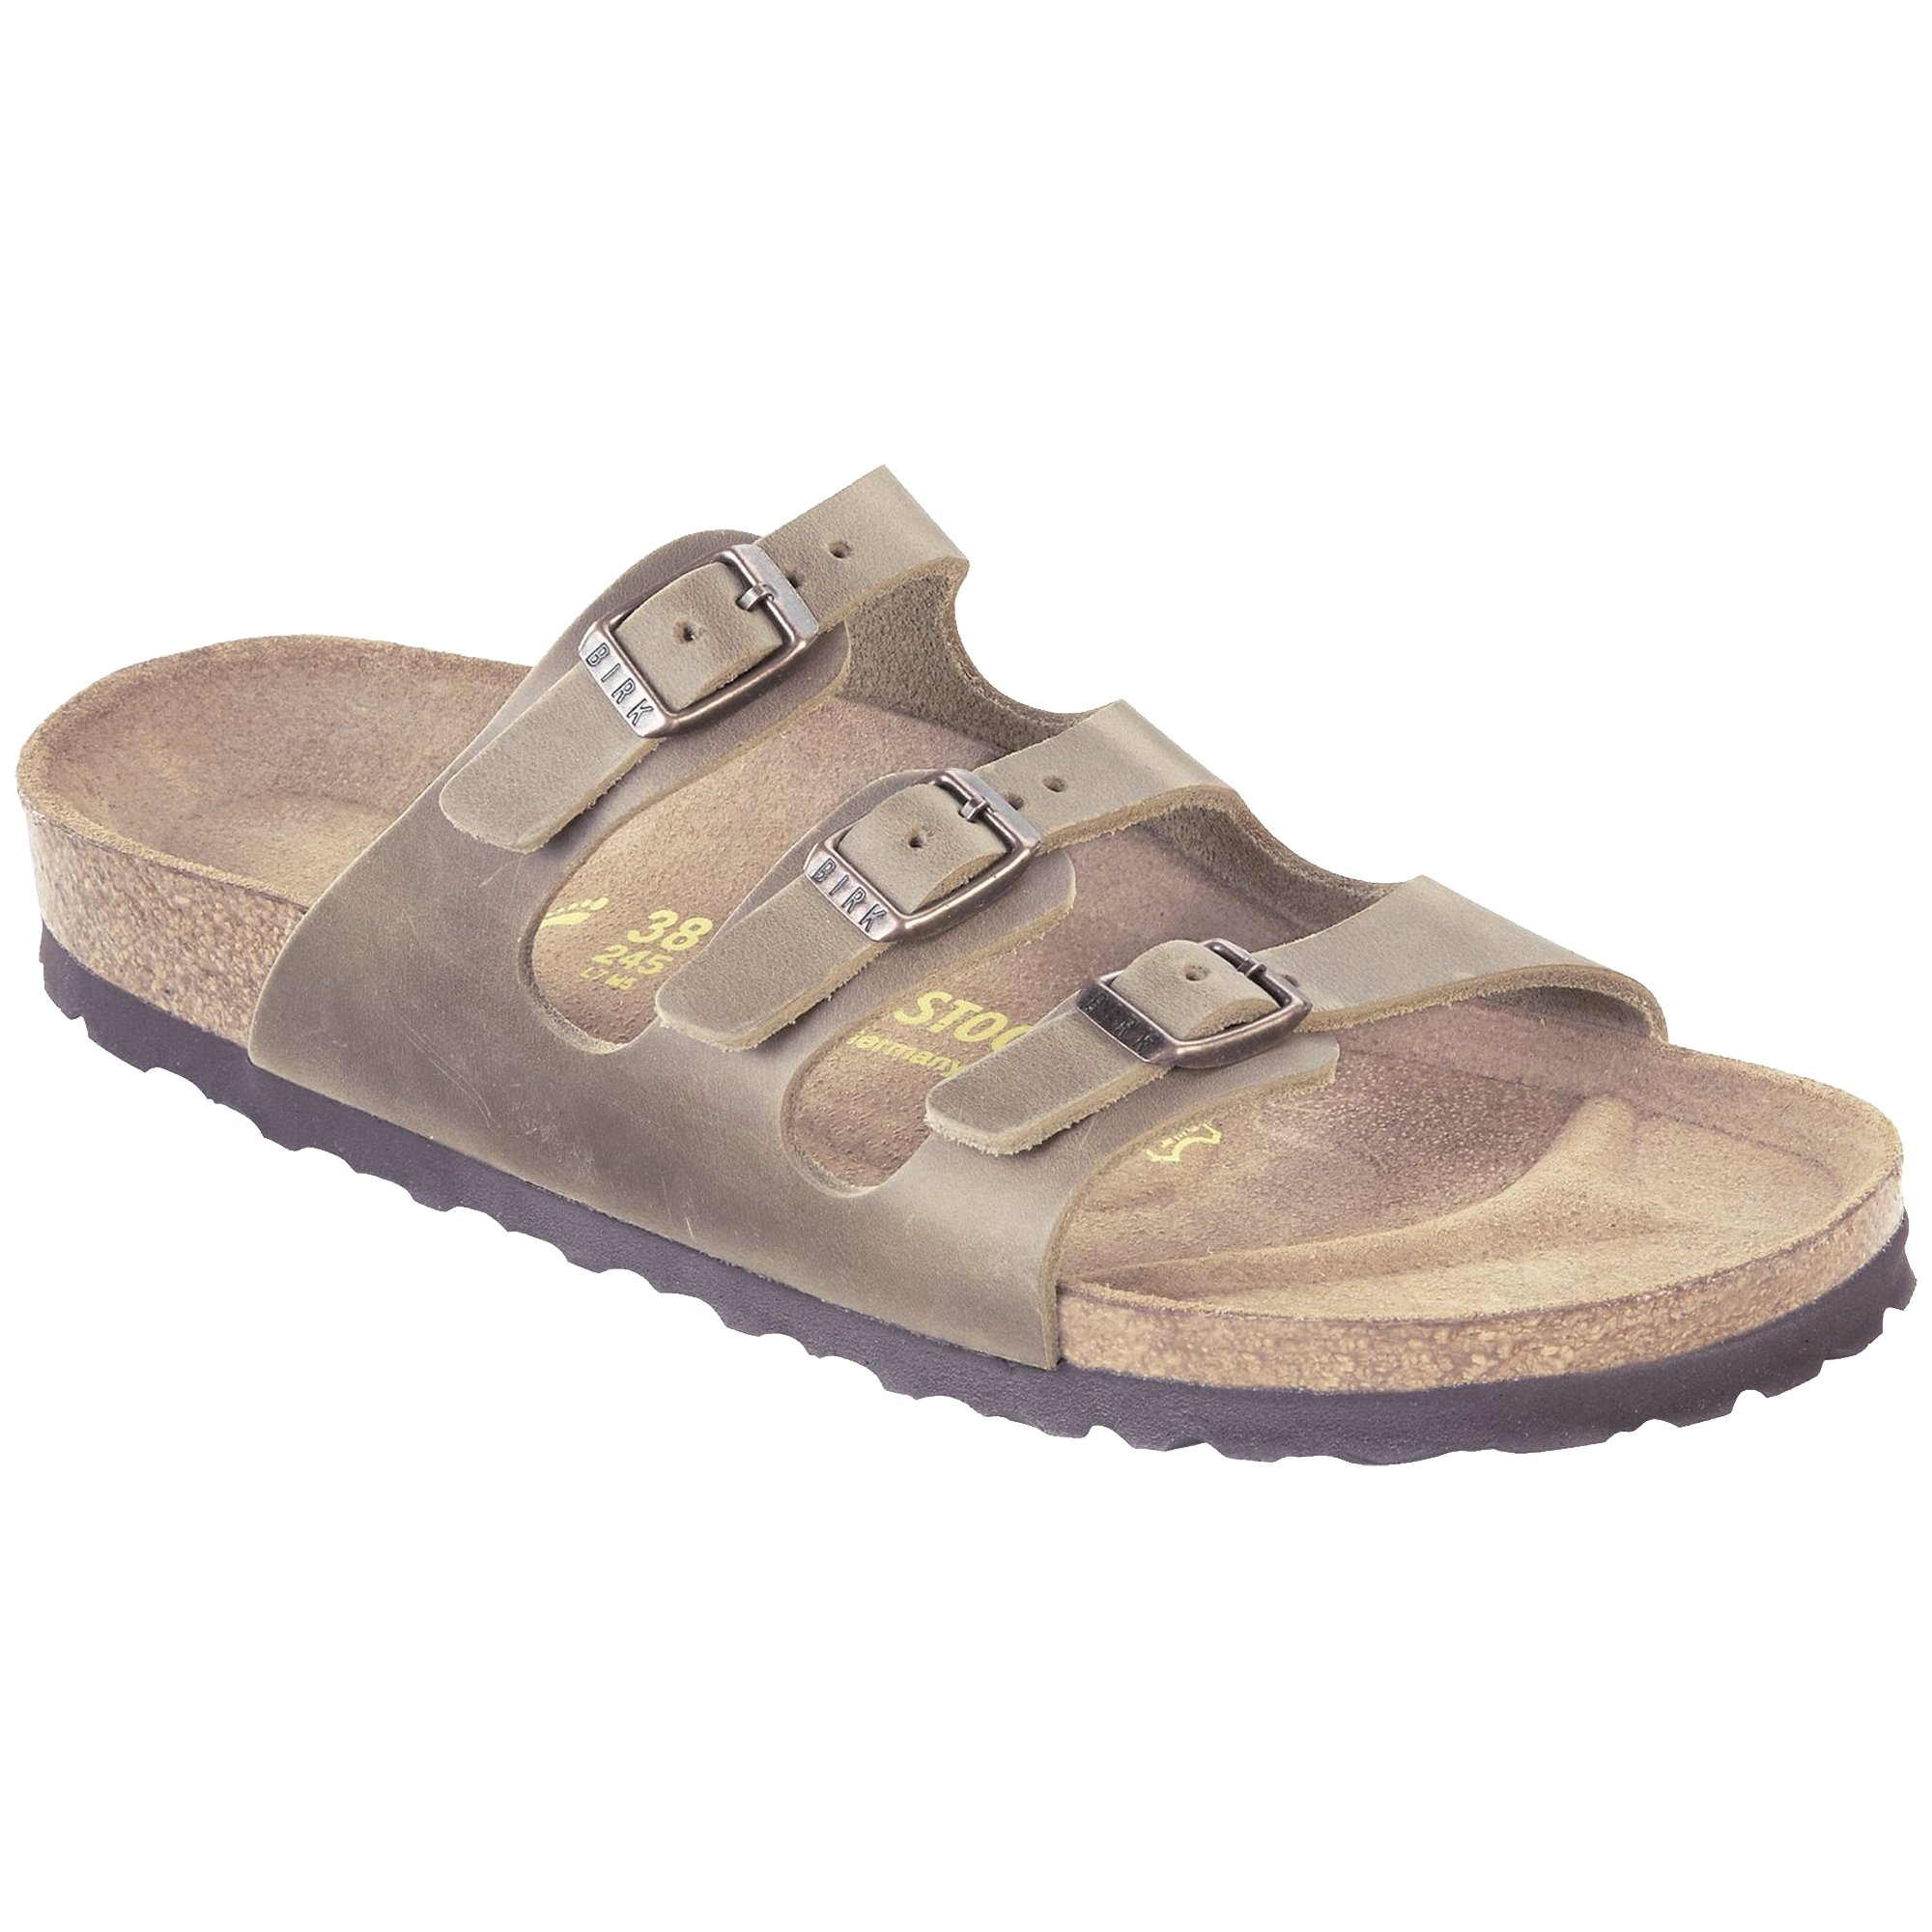 Birkenstock Women's Florida Soft Footbed Tobacco Oiled Leather Sandal 38 (US Women's 7-7.5)